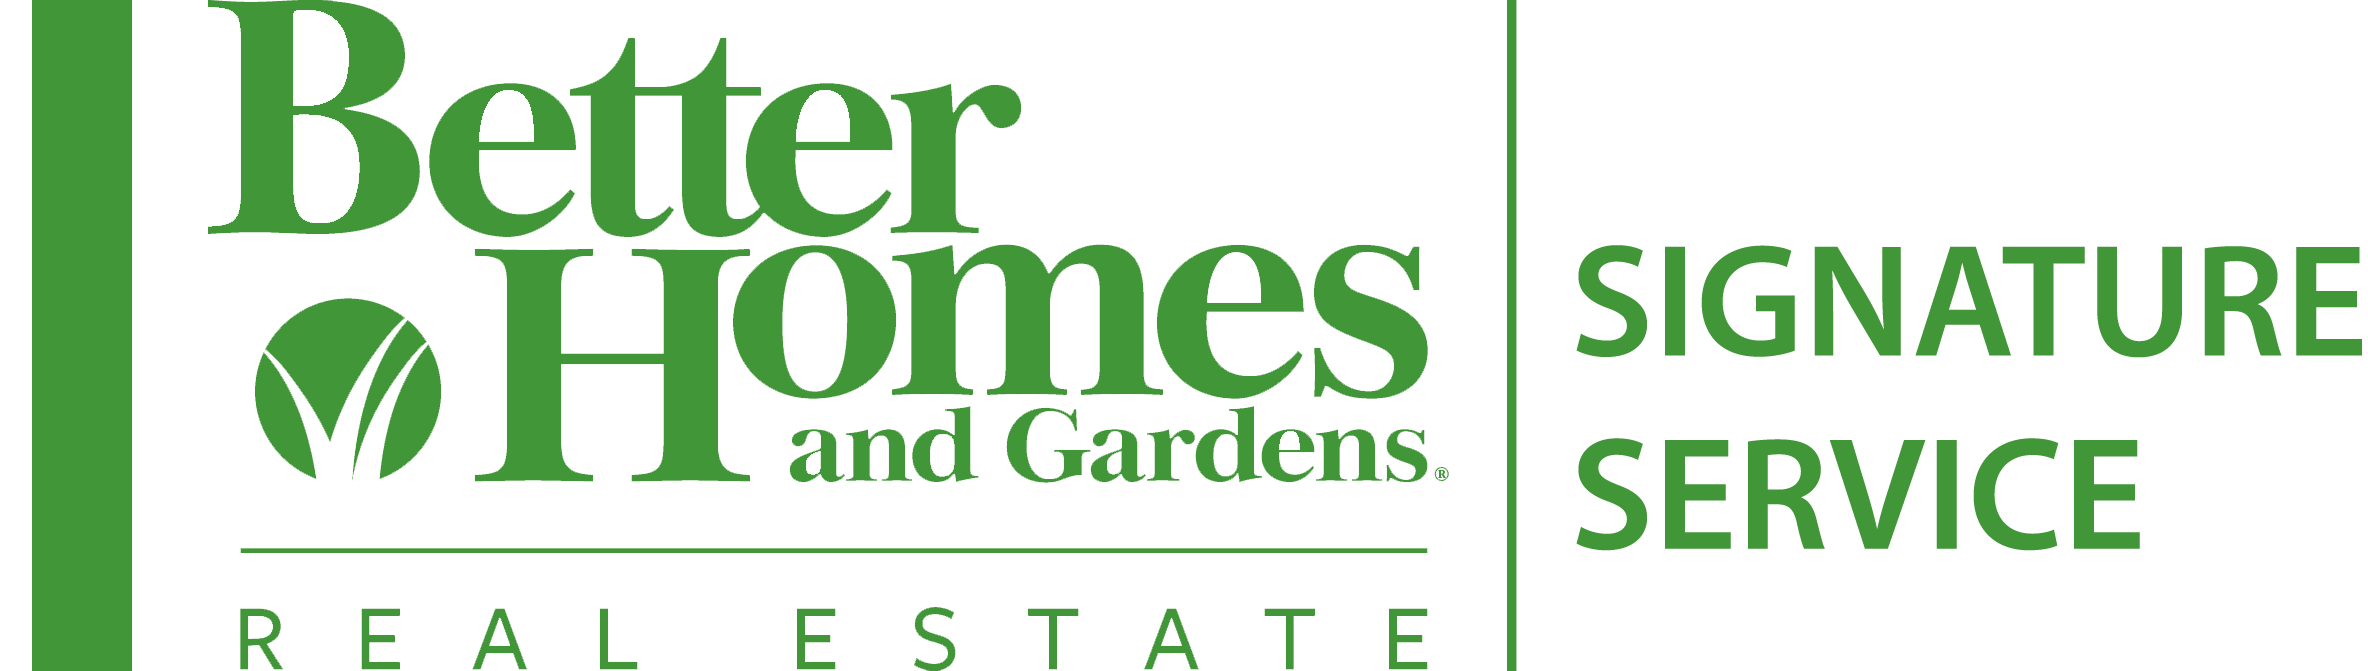 Better homes and gardens real estate signature service Bhg homes